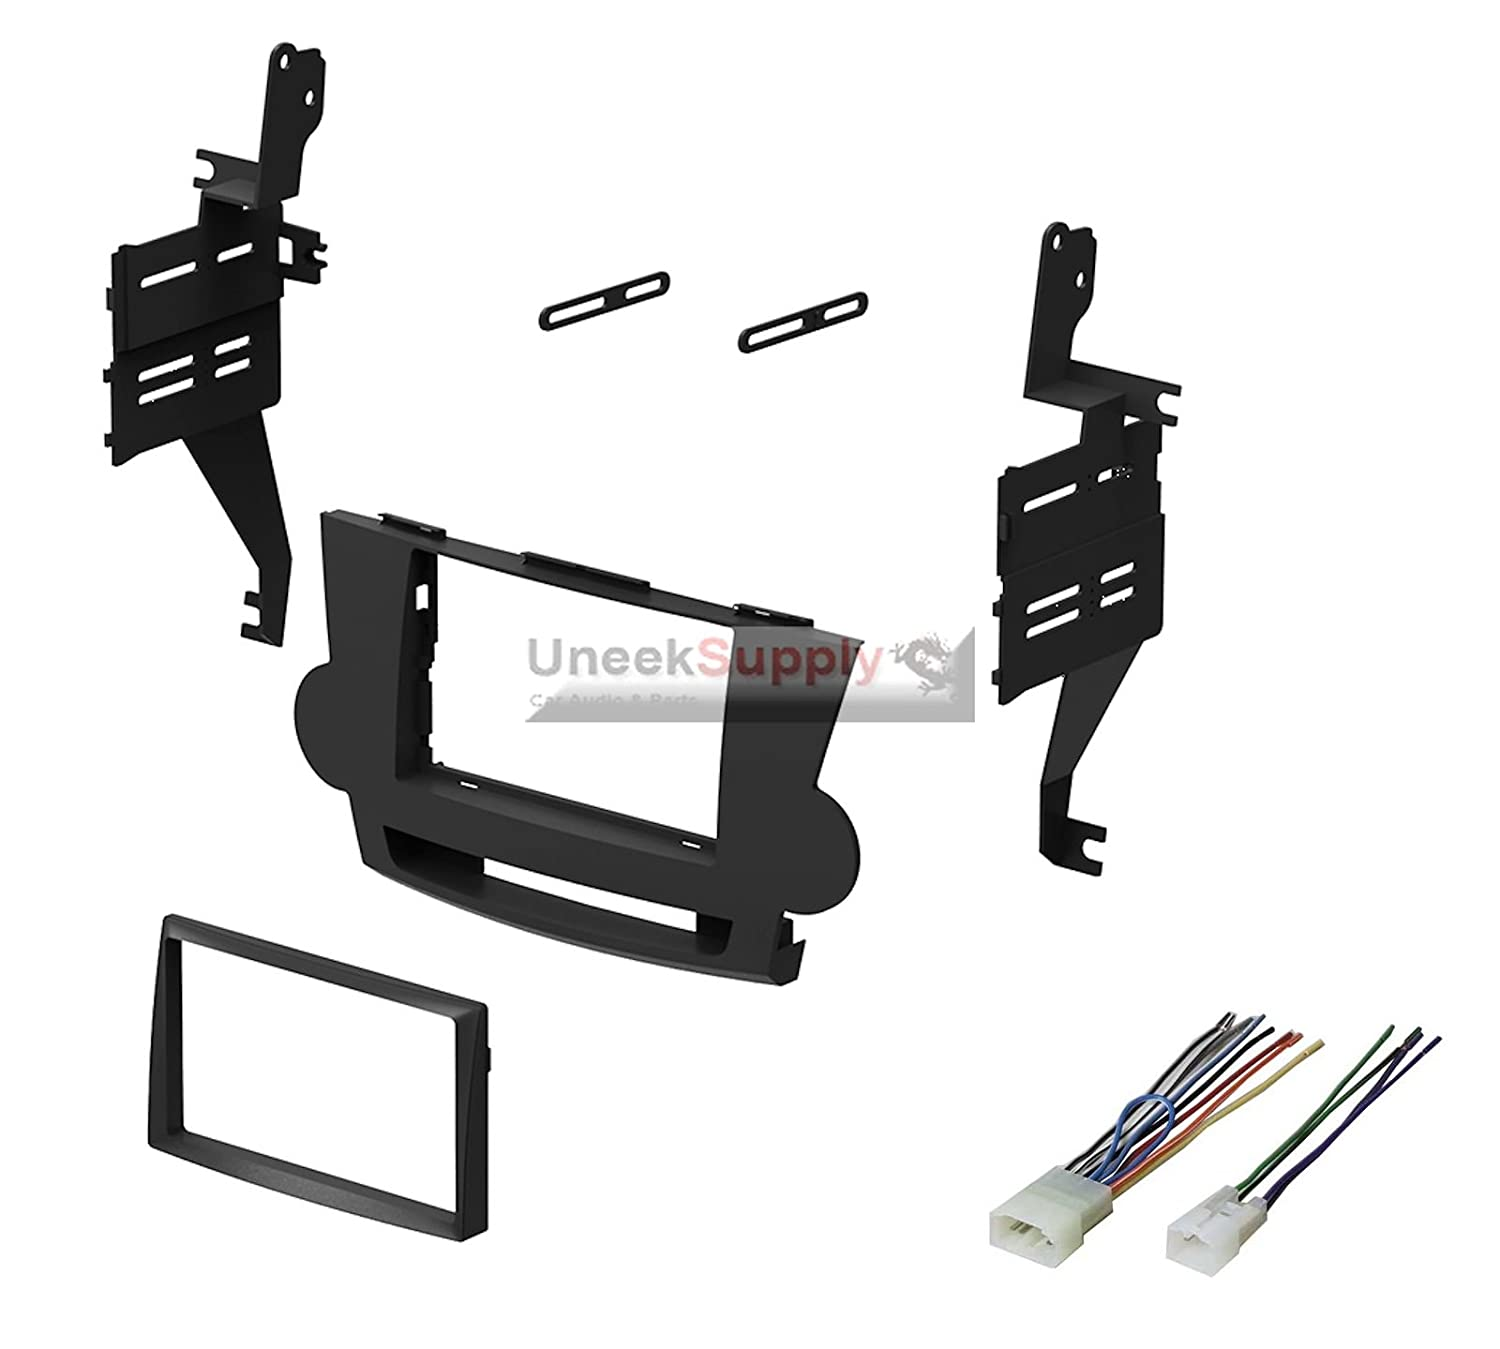 2008 2009 2010 2011 2012 Toyota Highlander Dash Kit Wiring Harness For After Market Stereos Page 3 Double Din Stereo Install With Wire Cell Phones Accessories